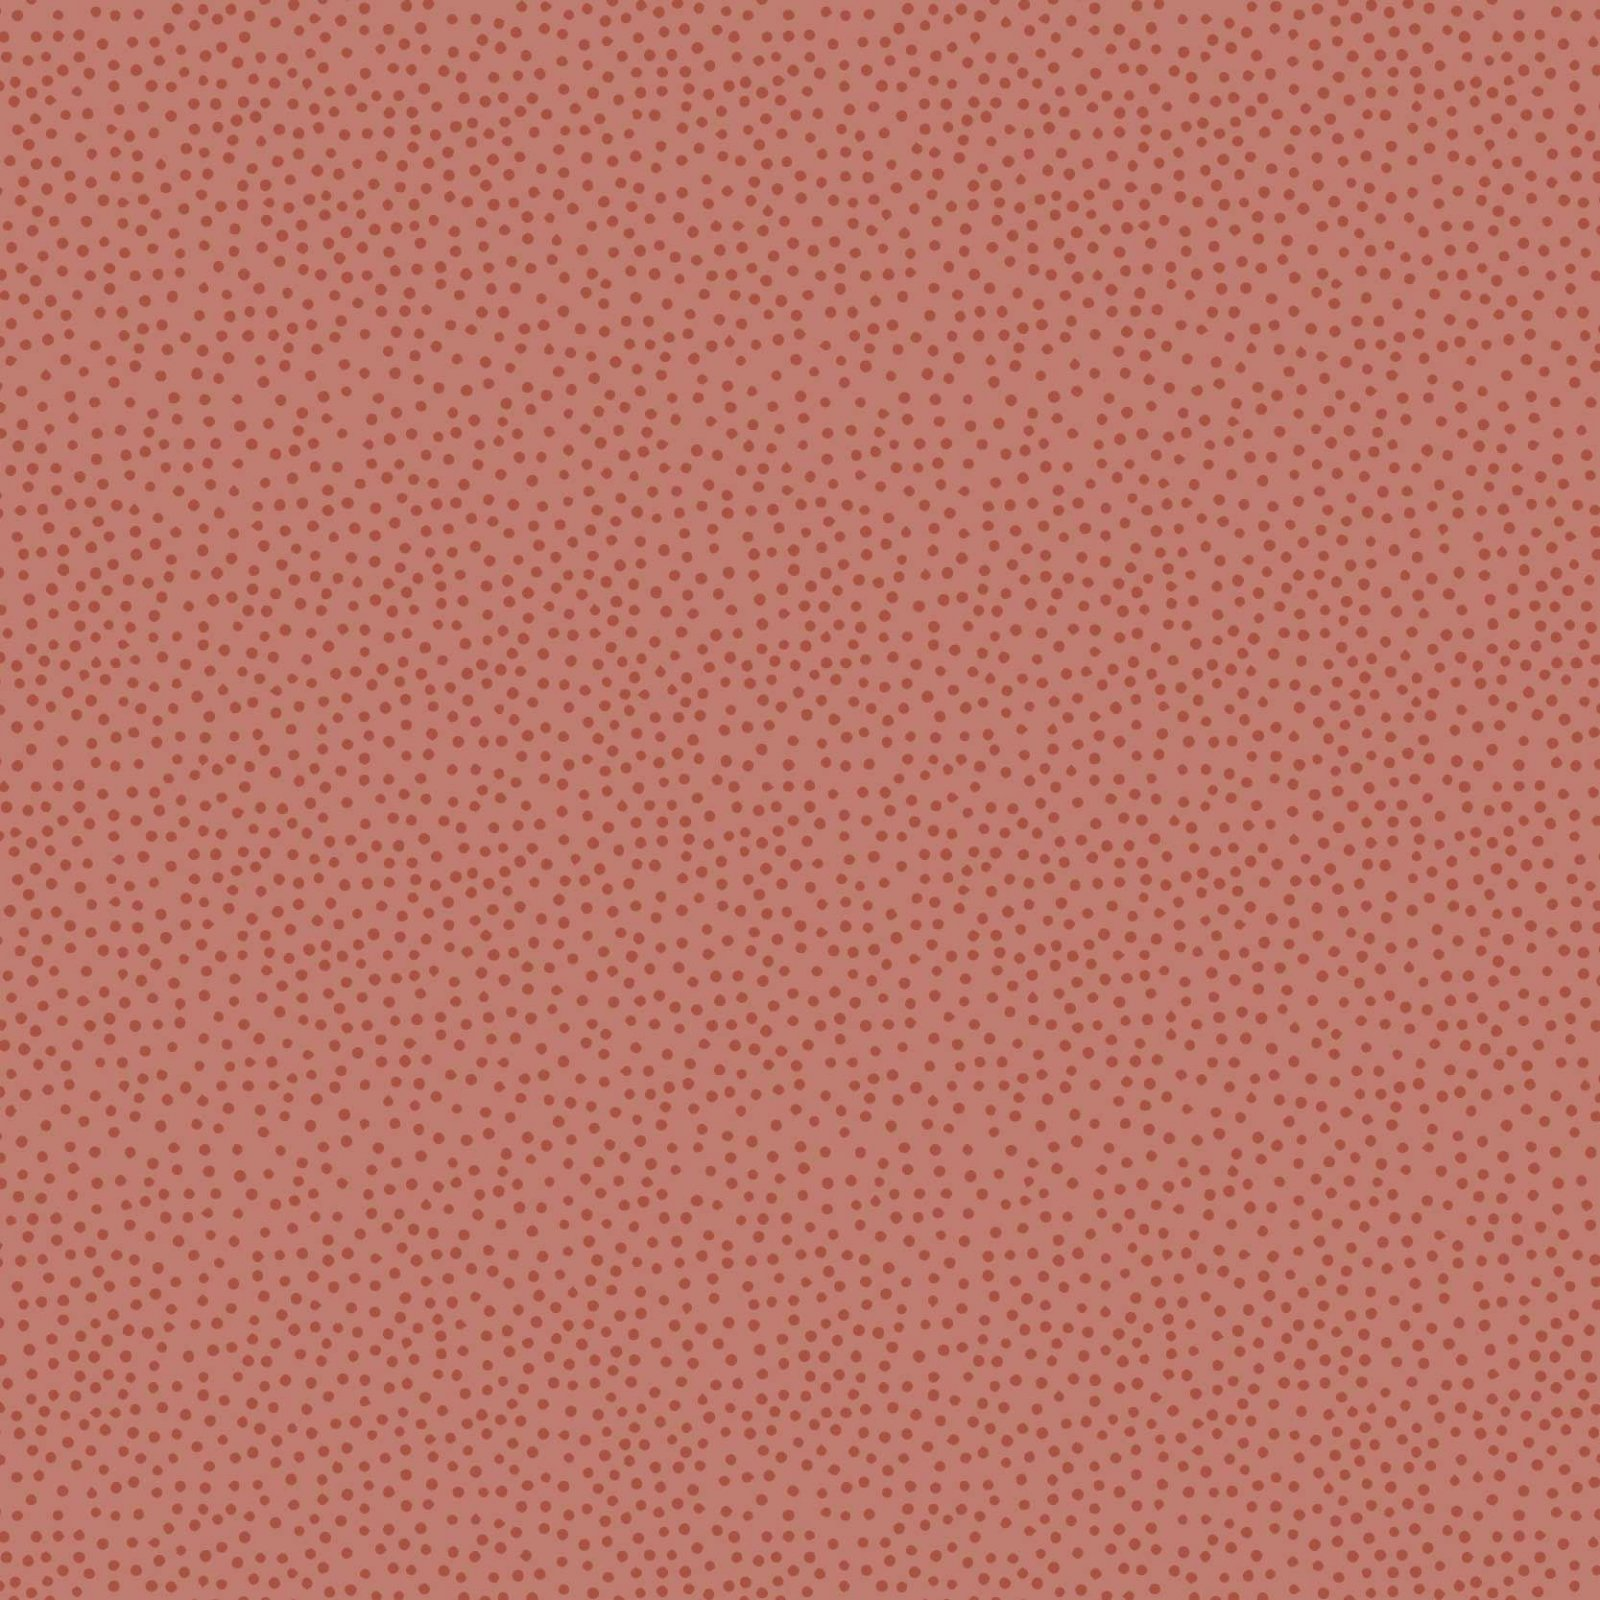 Tilda - Devonstone Collection - Birdhouse Basics - Blush with Red Spot